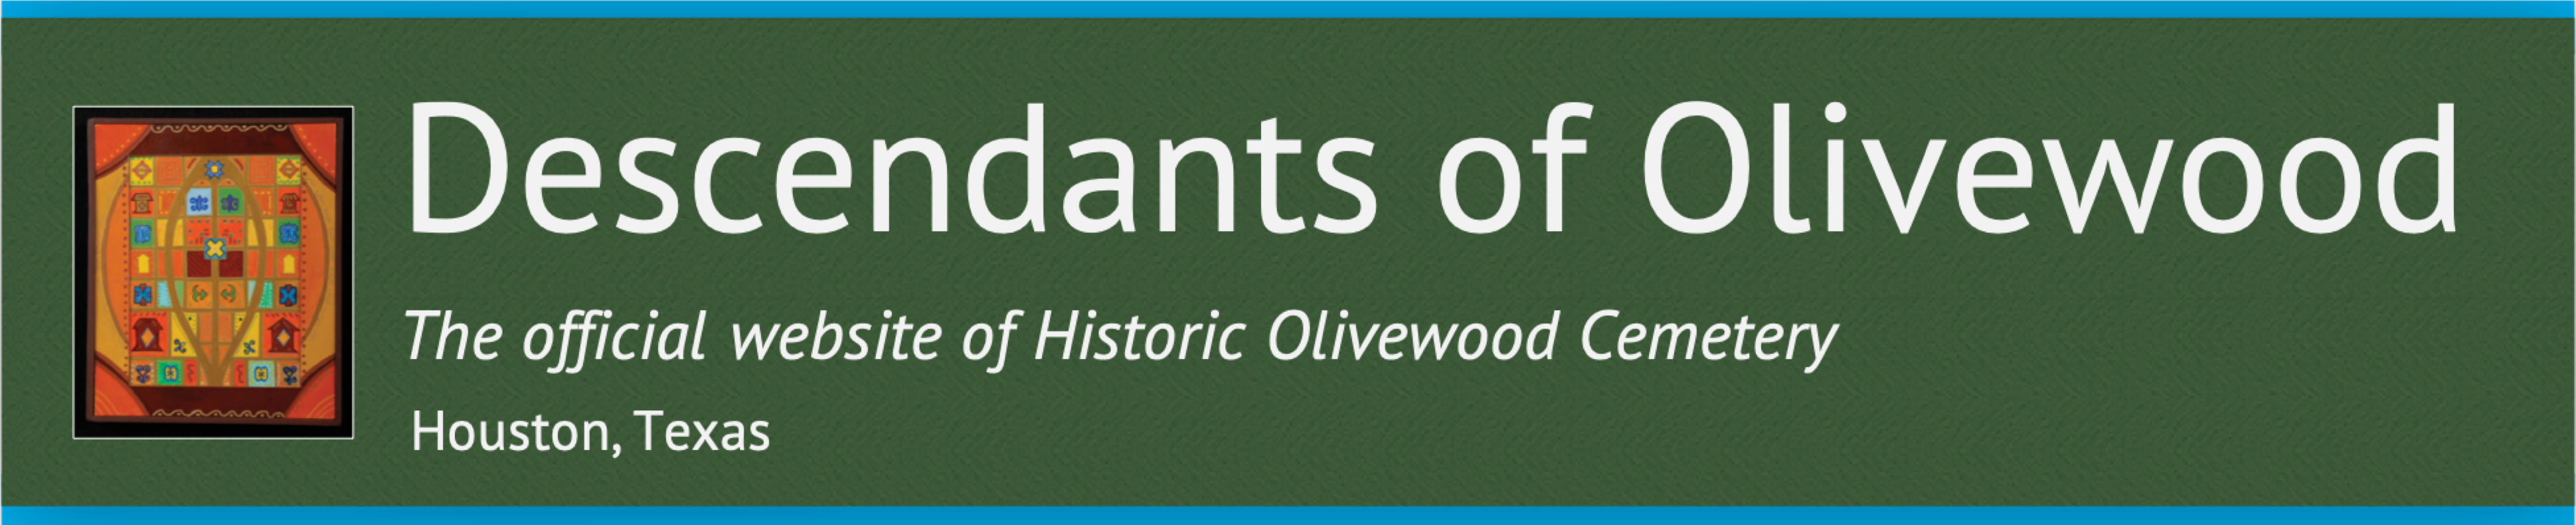 Descendants of Olivewood